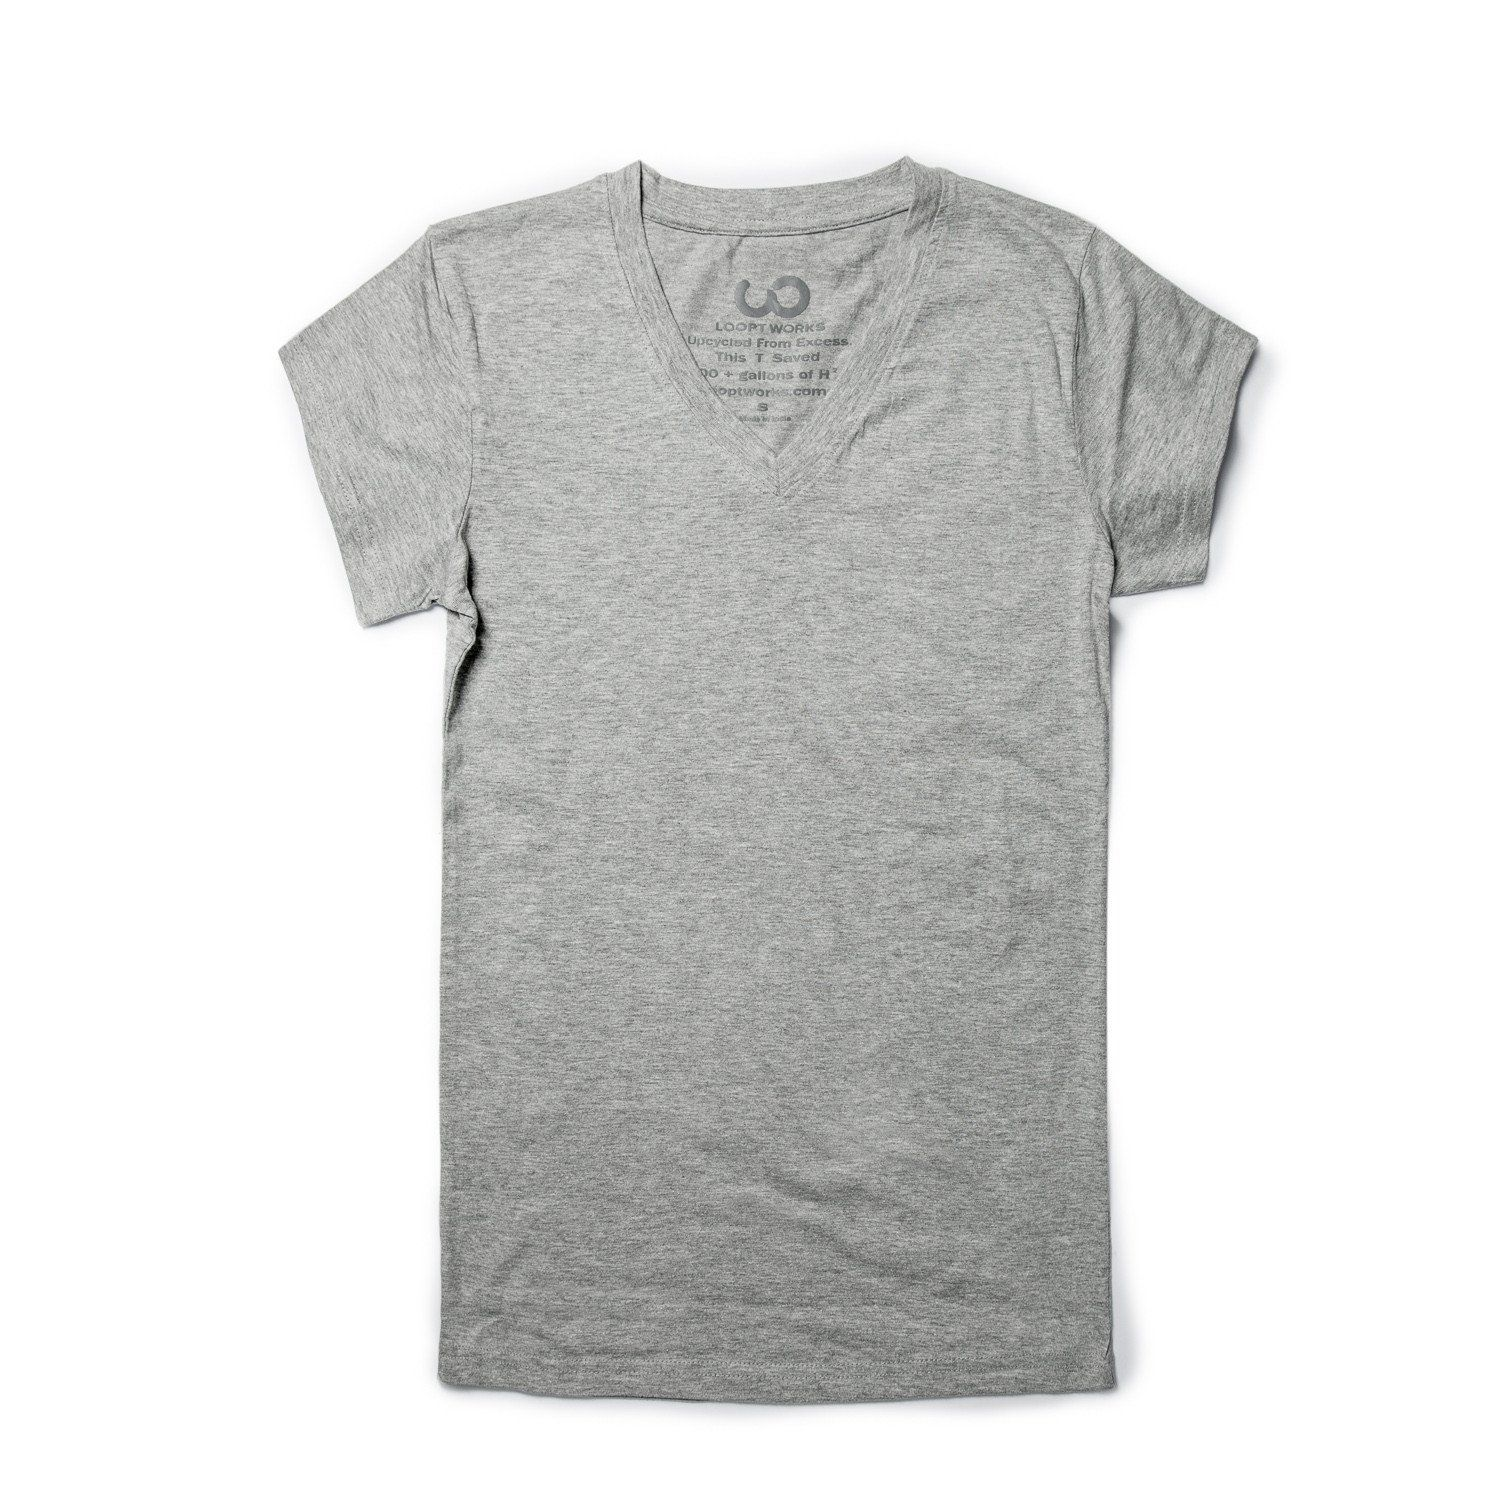 6b75589d6 Upcycled from repurposed premium poly-cotton blends rescued from the  Apparel Industry, our upcycled gray tee saves over 400 gallons of water  over a t-shirt ...